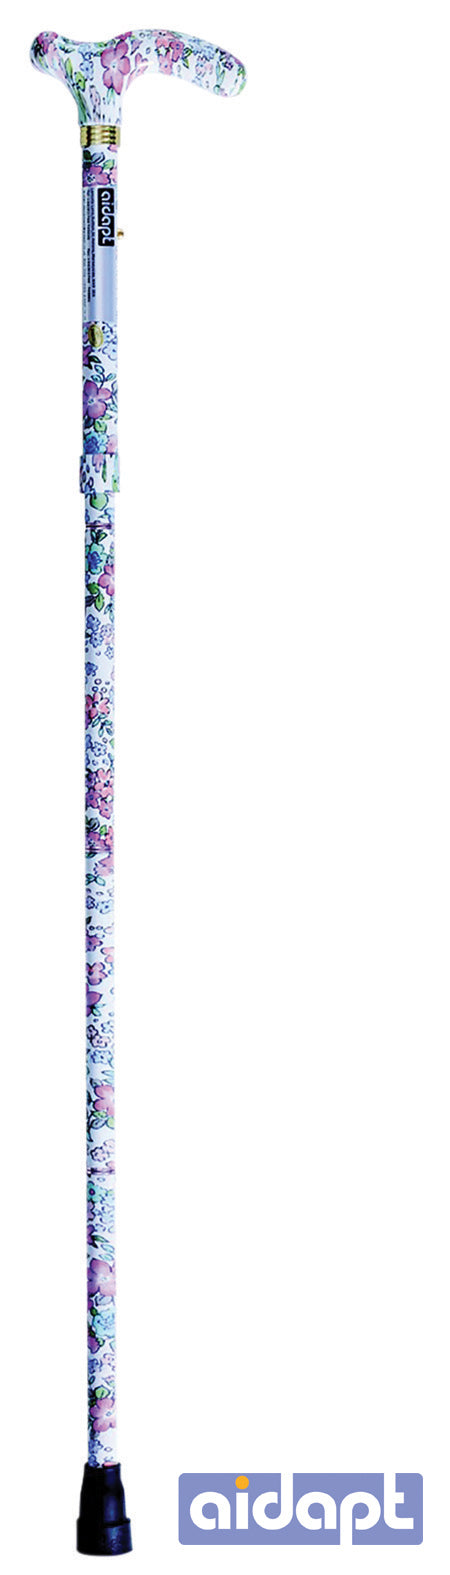 Deluxe Folding Walking Cane Floral